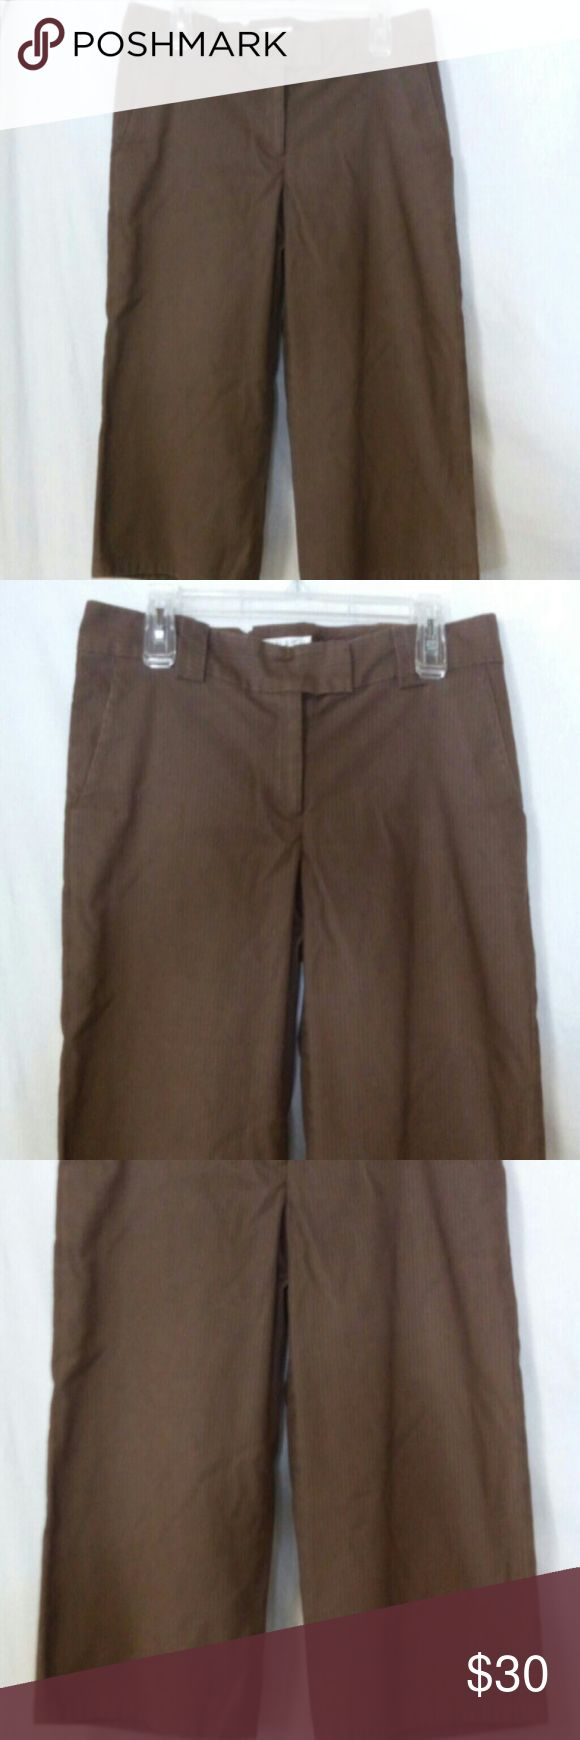 """Wyeth by Todd Magill women's size 10 Bermuda short Barely worn, Brown pin stripe, zipper with a metal closure and anchor button, two front pockets and two back flap faux pockets, polyester and spandex, dry clean, waist 35"""", front rise 7 1/2"""", inseam 16"""" Wyeth Shorts Bermudas"""